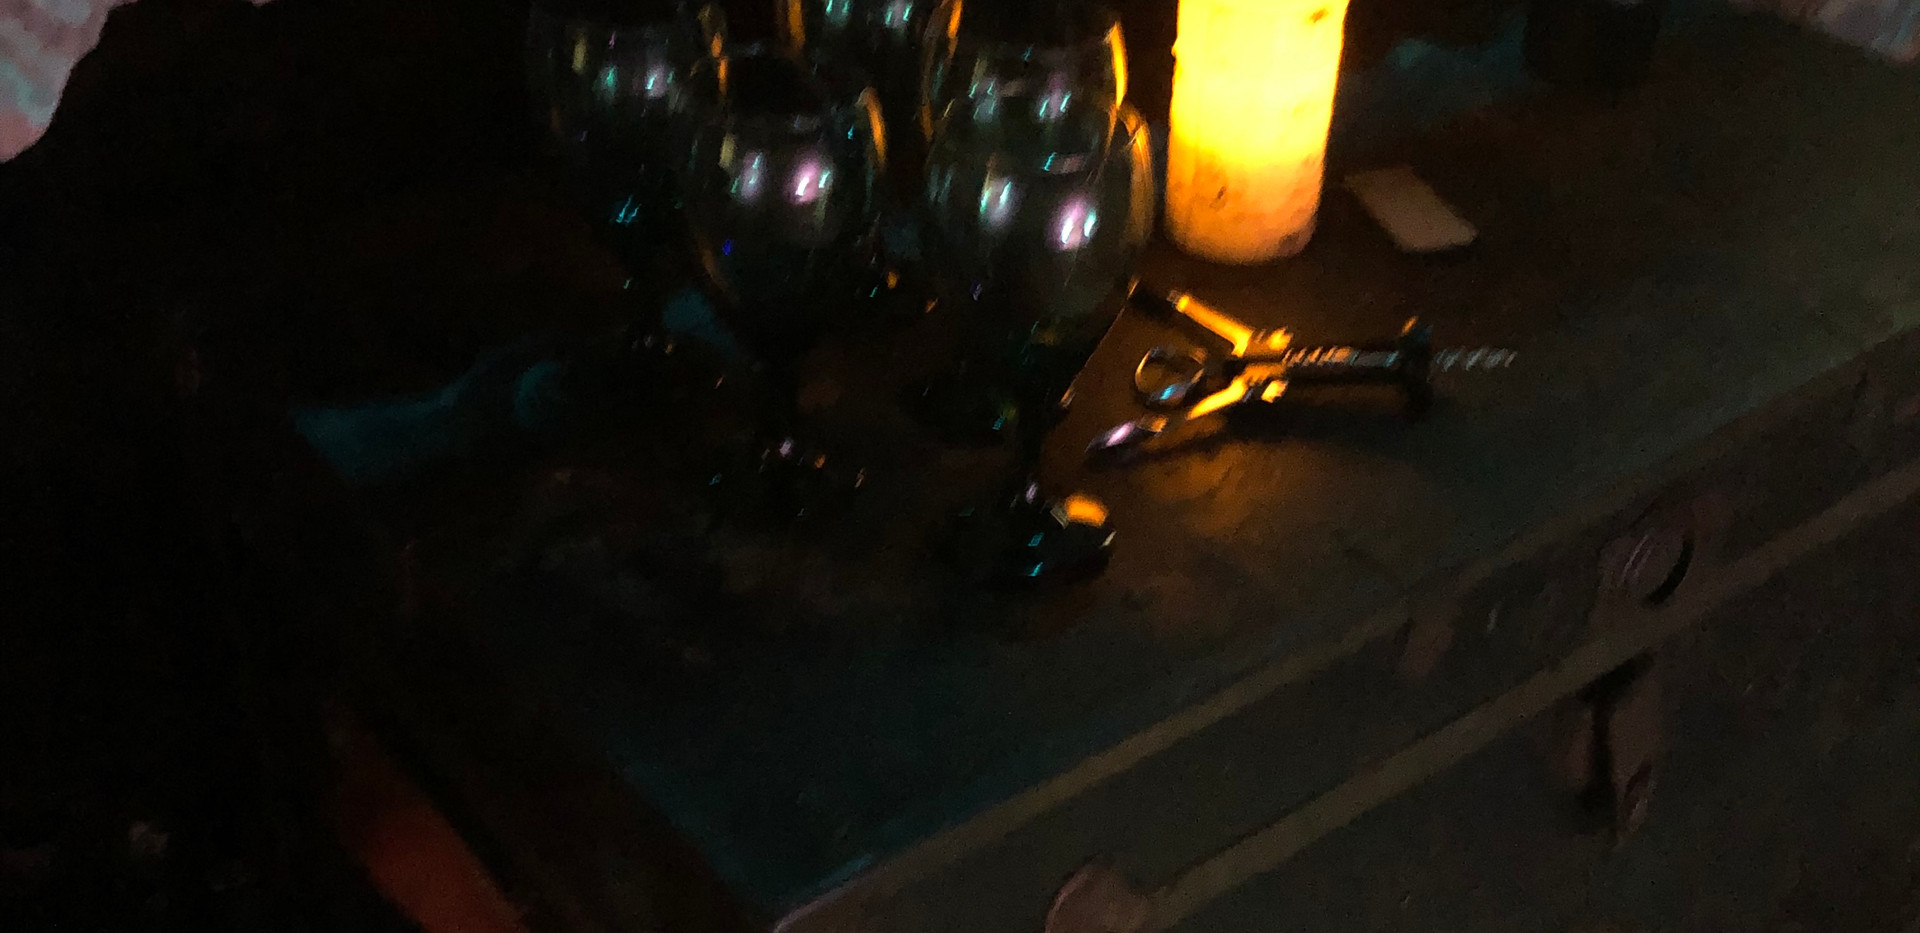 Candles and wine near the fireplace